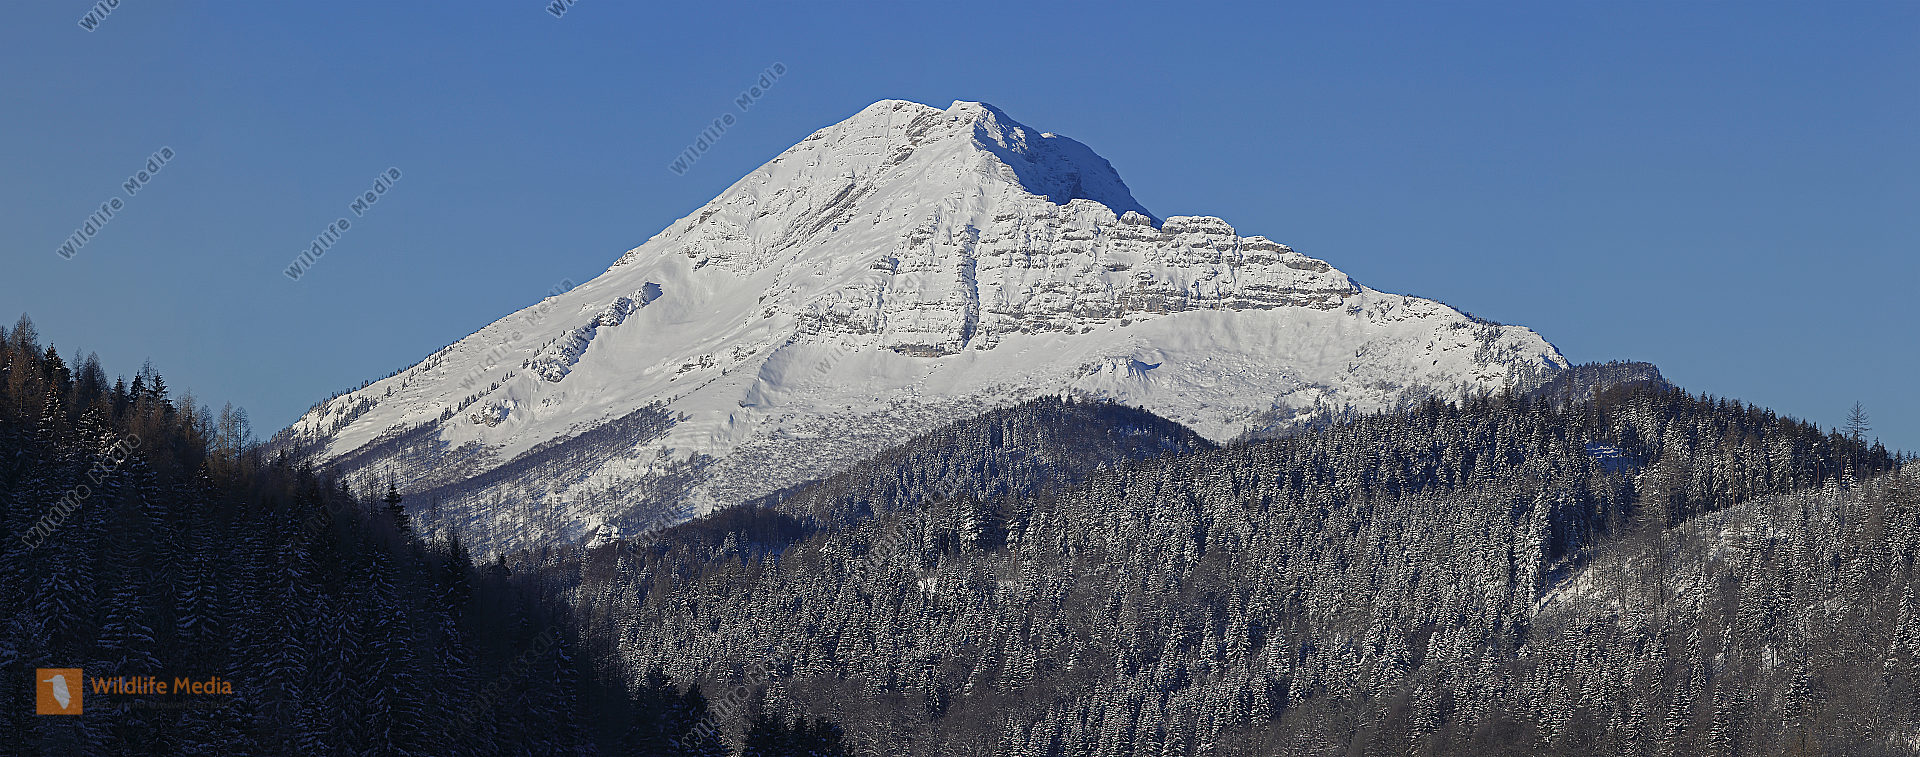 Ötscher im Winter Panorama